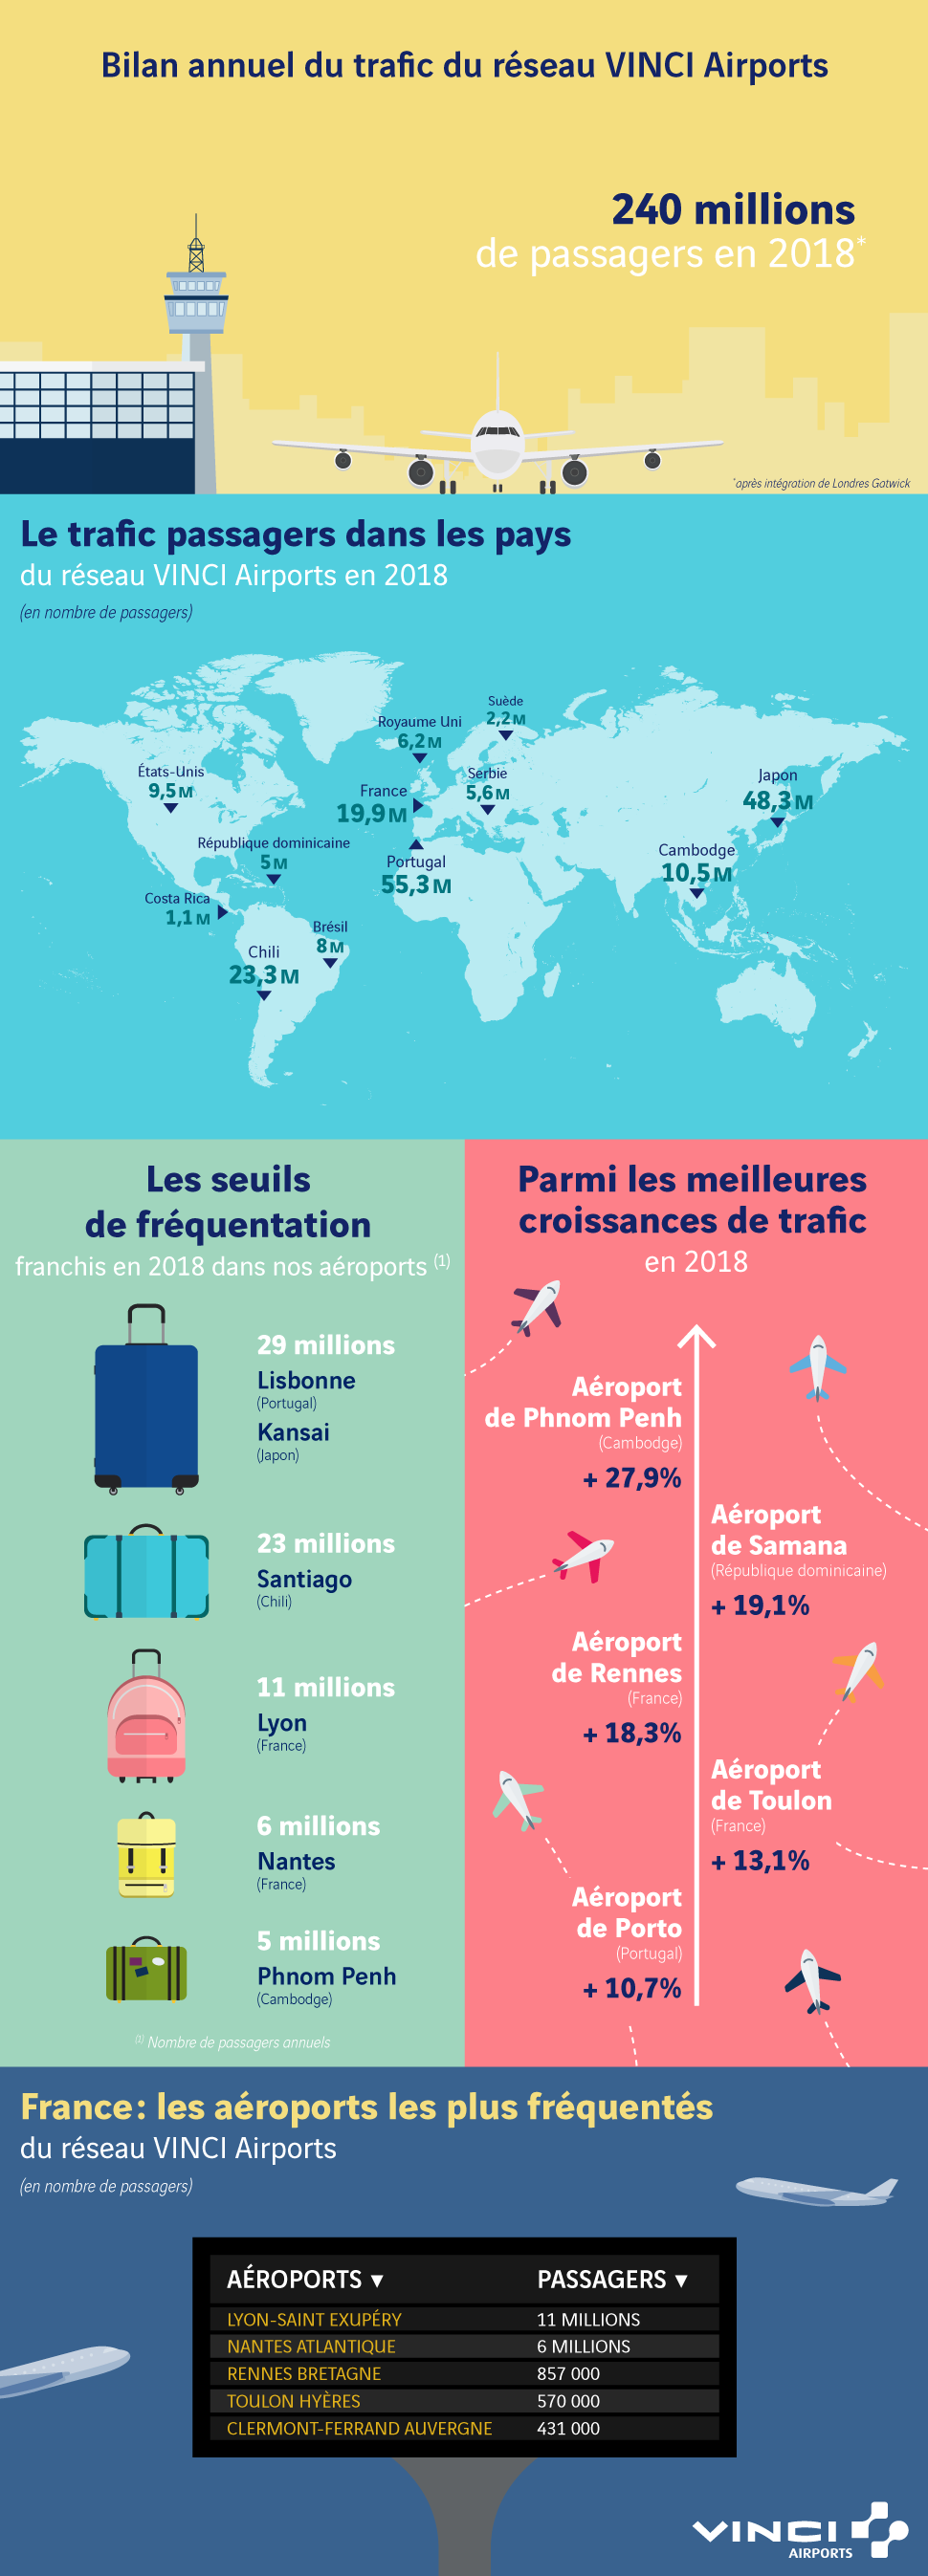 Infographie VINCI Airports